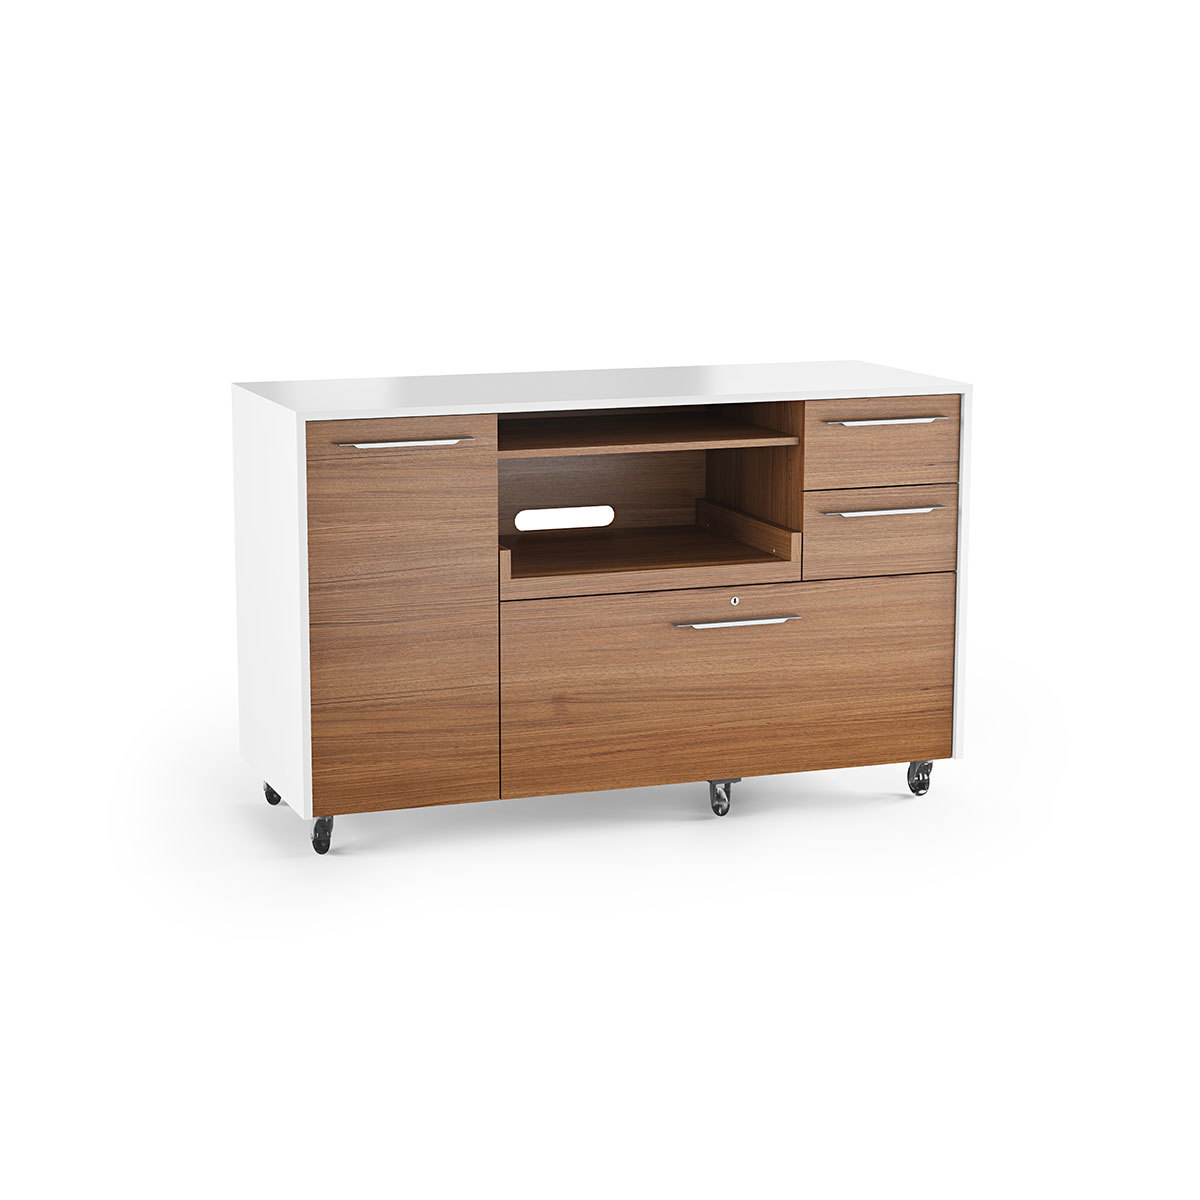 Format Multifunction Cabinet 6320